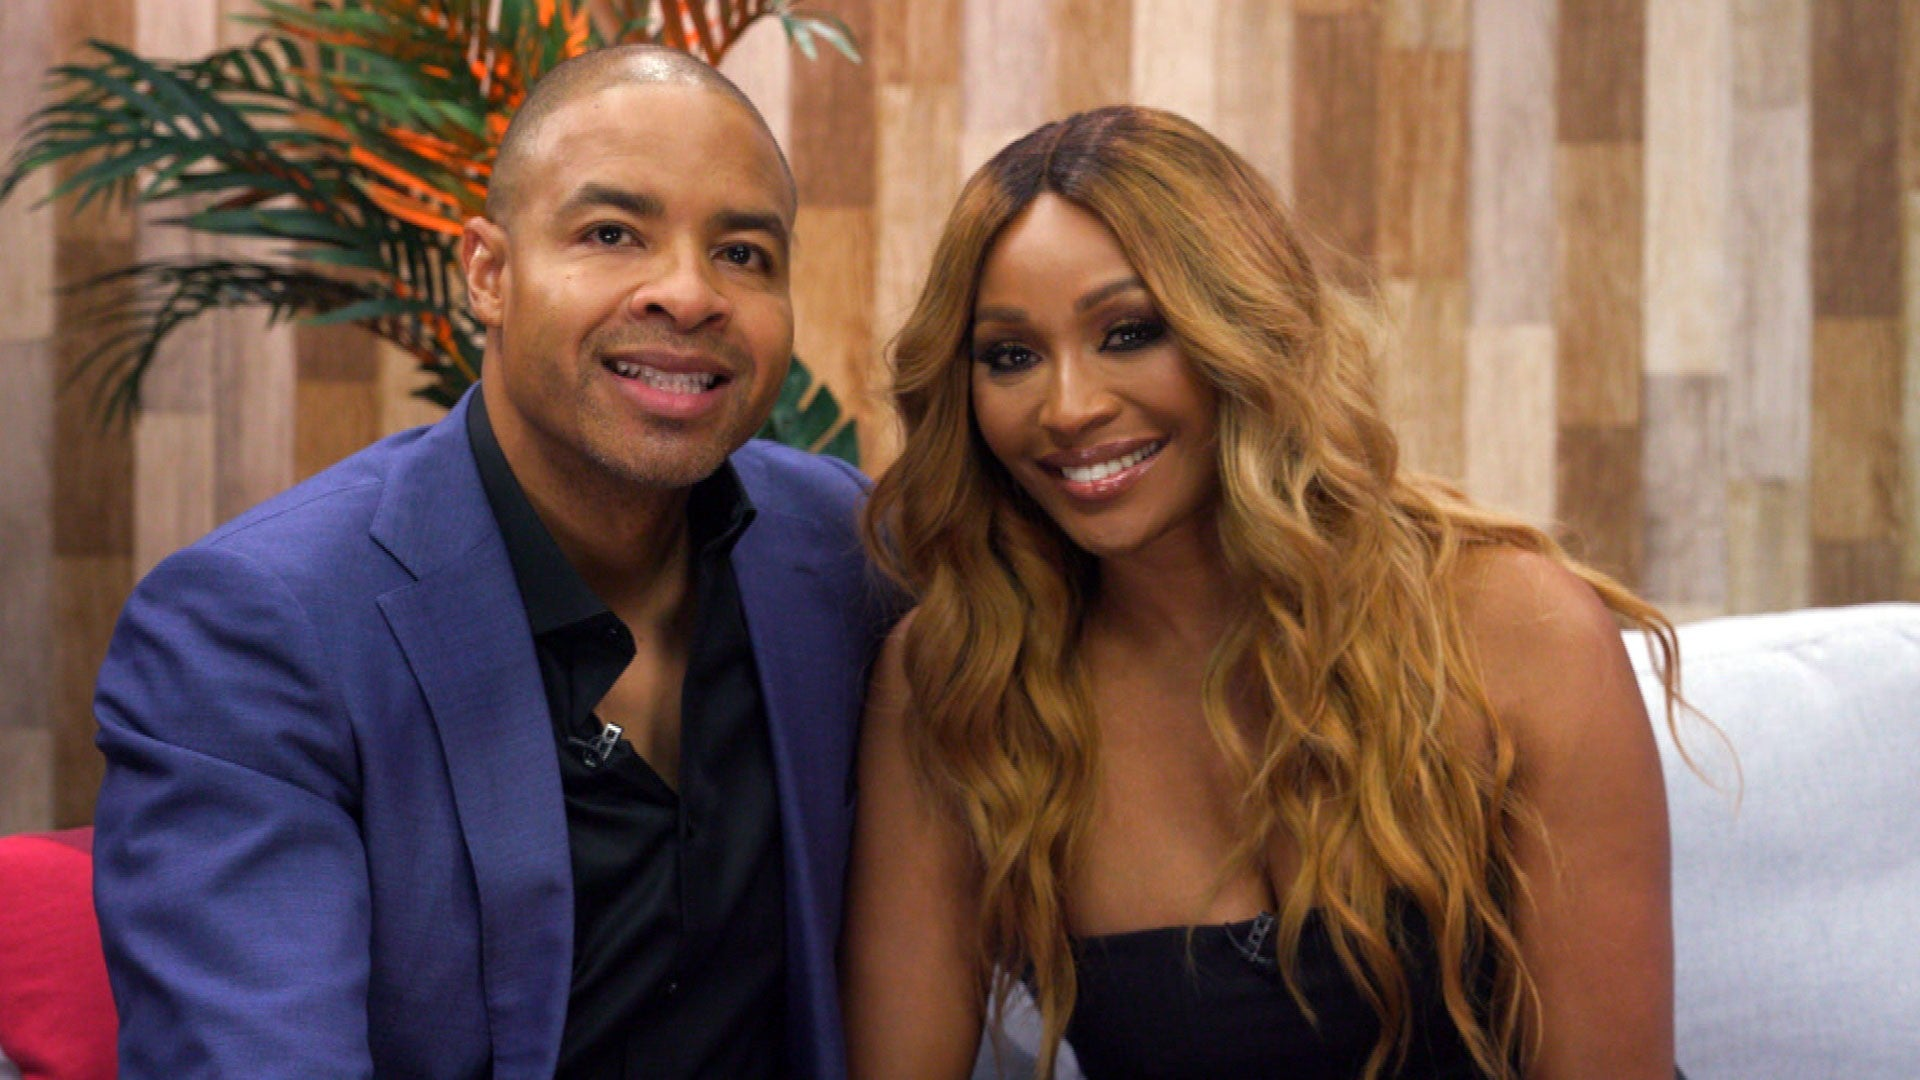 Cynthia Bailey's Photo With Mike Hill Has Fans Praising Them